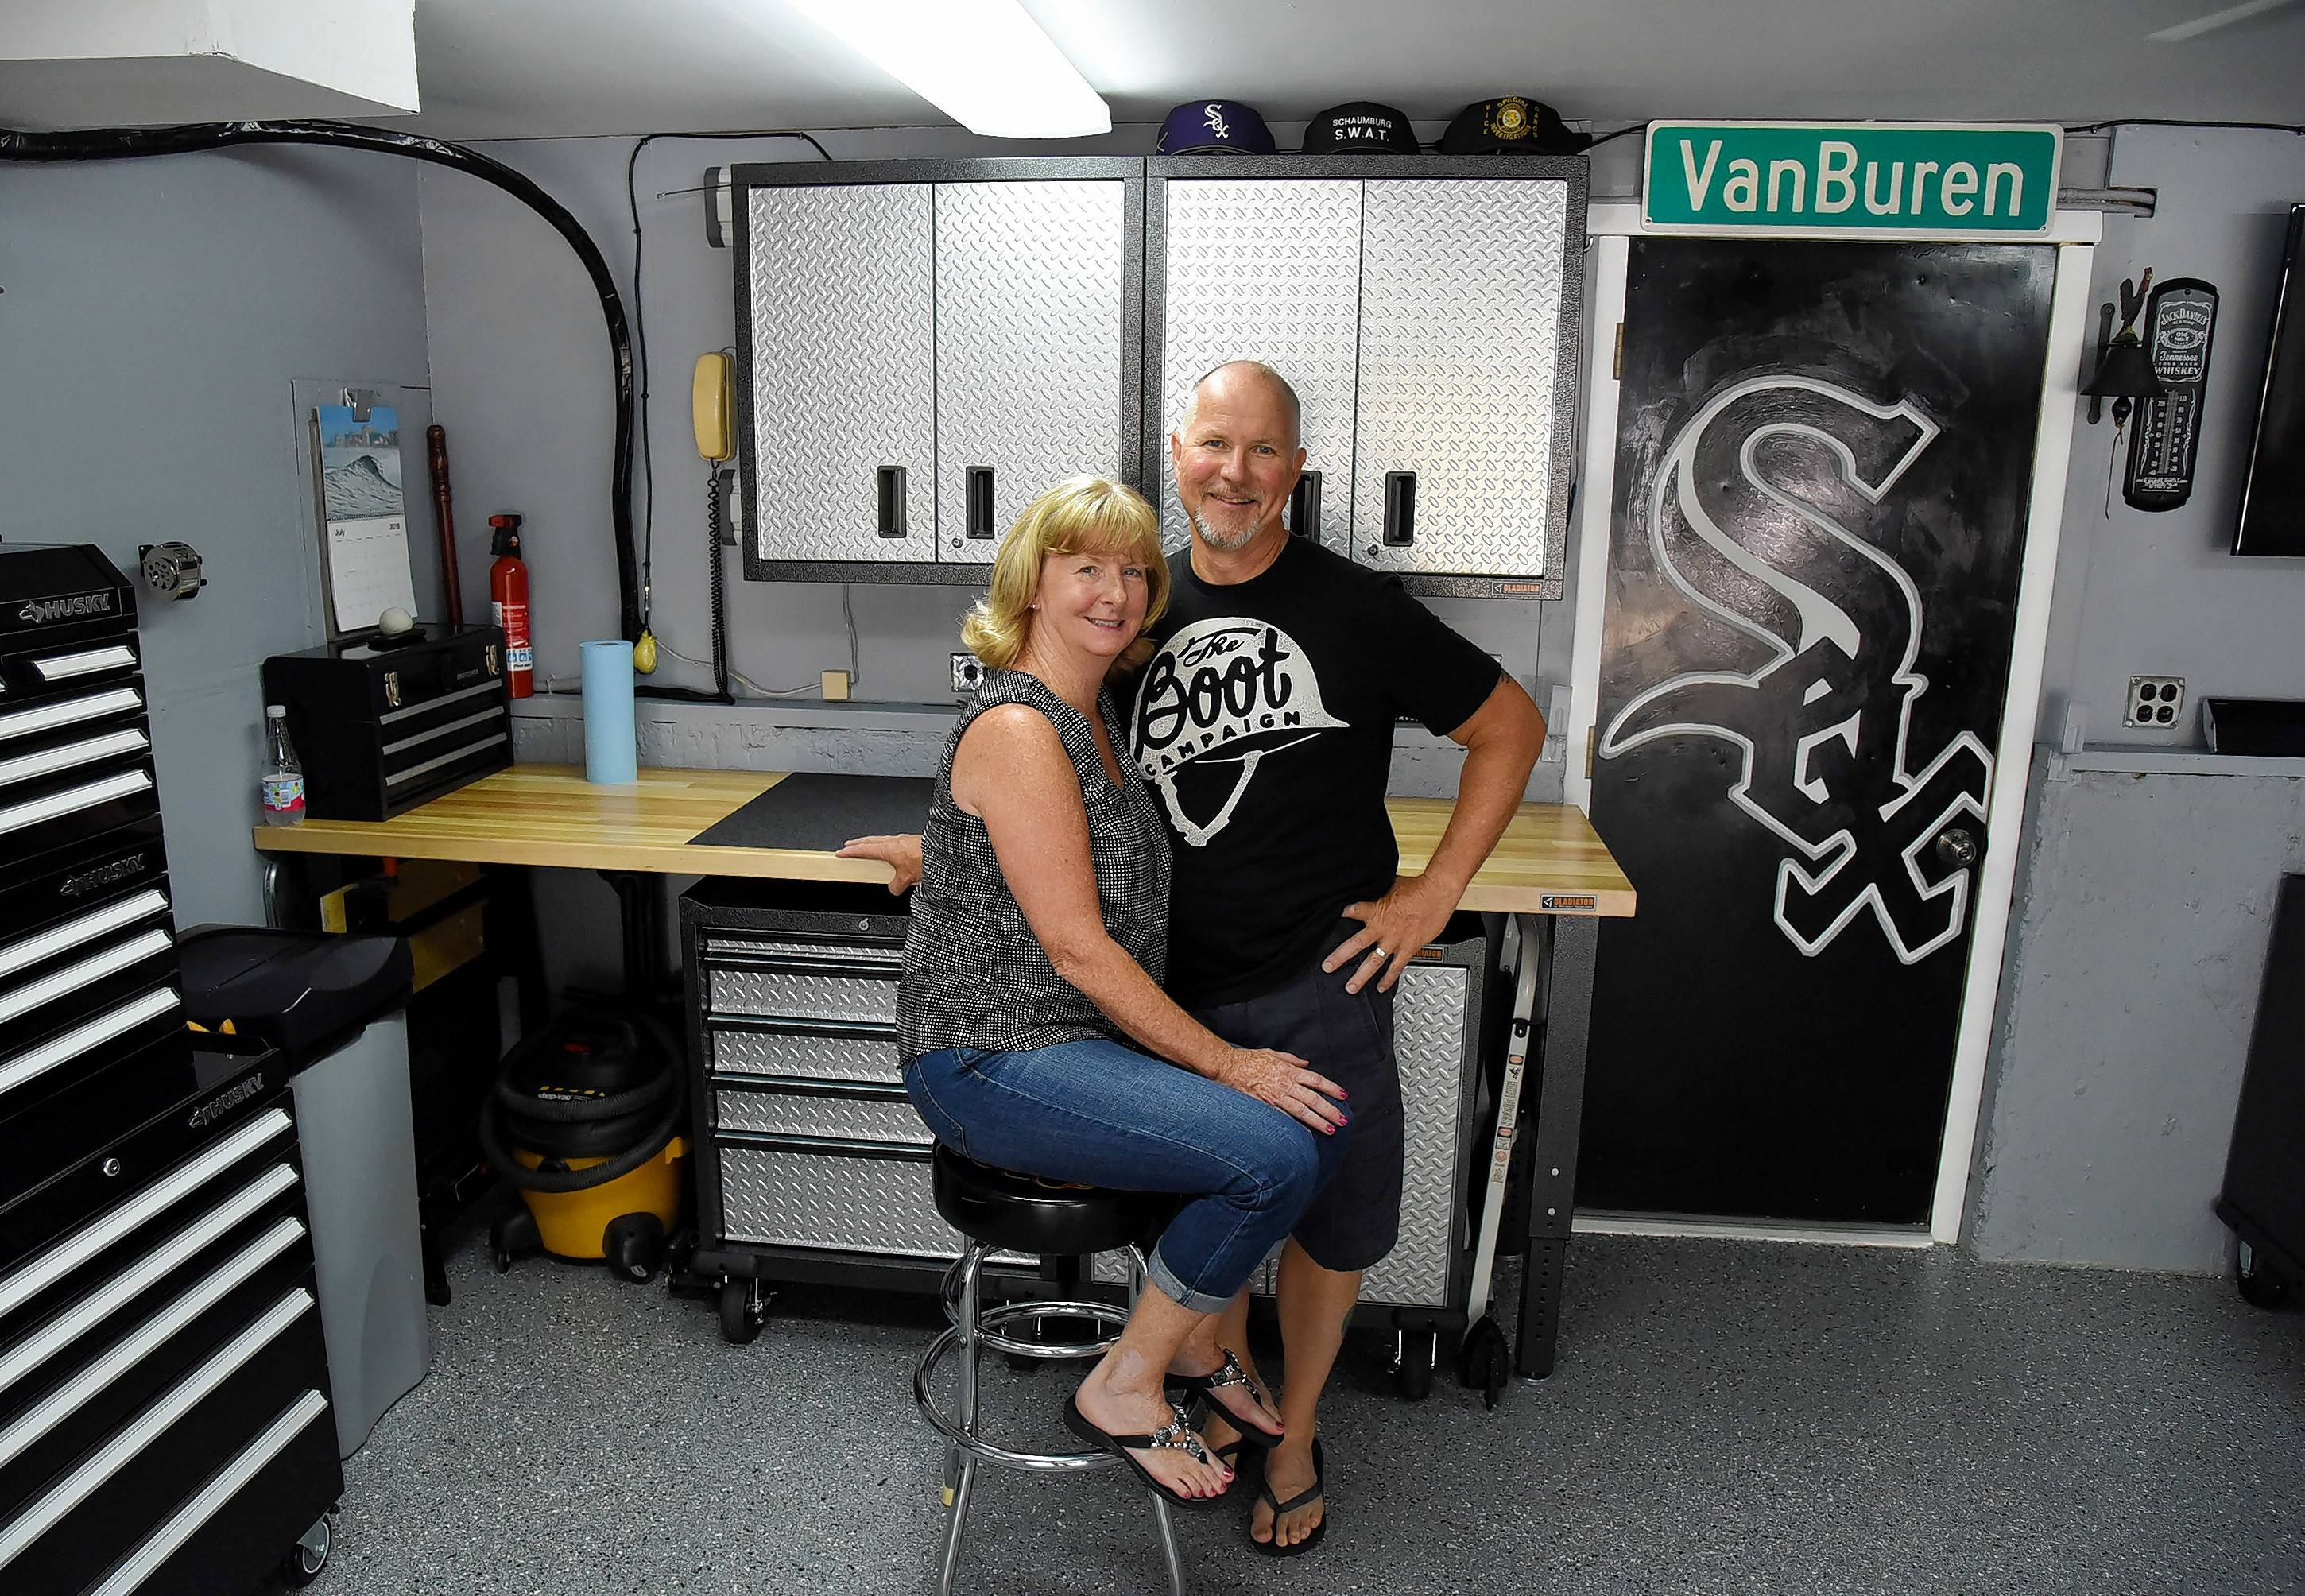 Rob and Liz Ruisz of Schaumburg won last year's garage makeover contest, sponsored by the Daily Herald and Garage Store. The floor received a concrete restoration and a commercial grade coating.